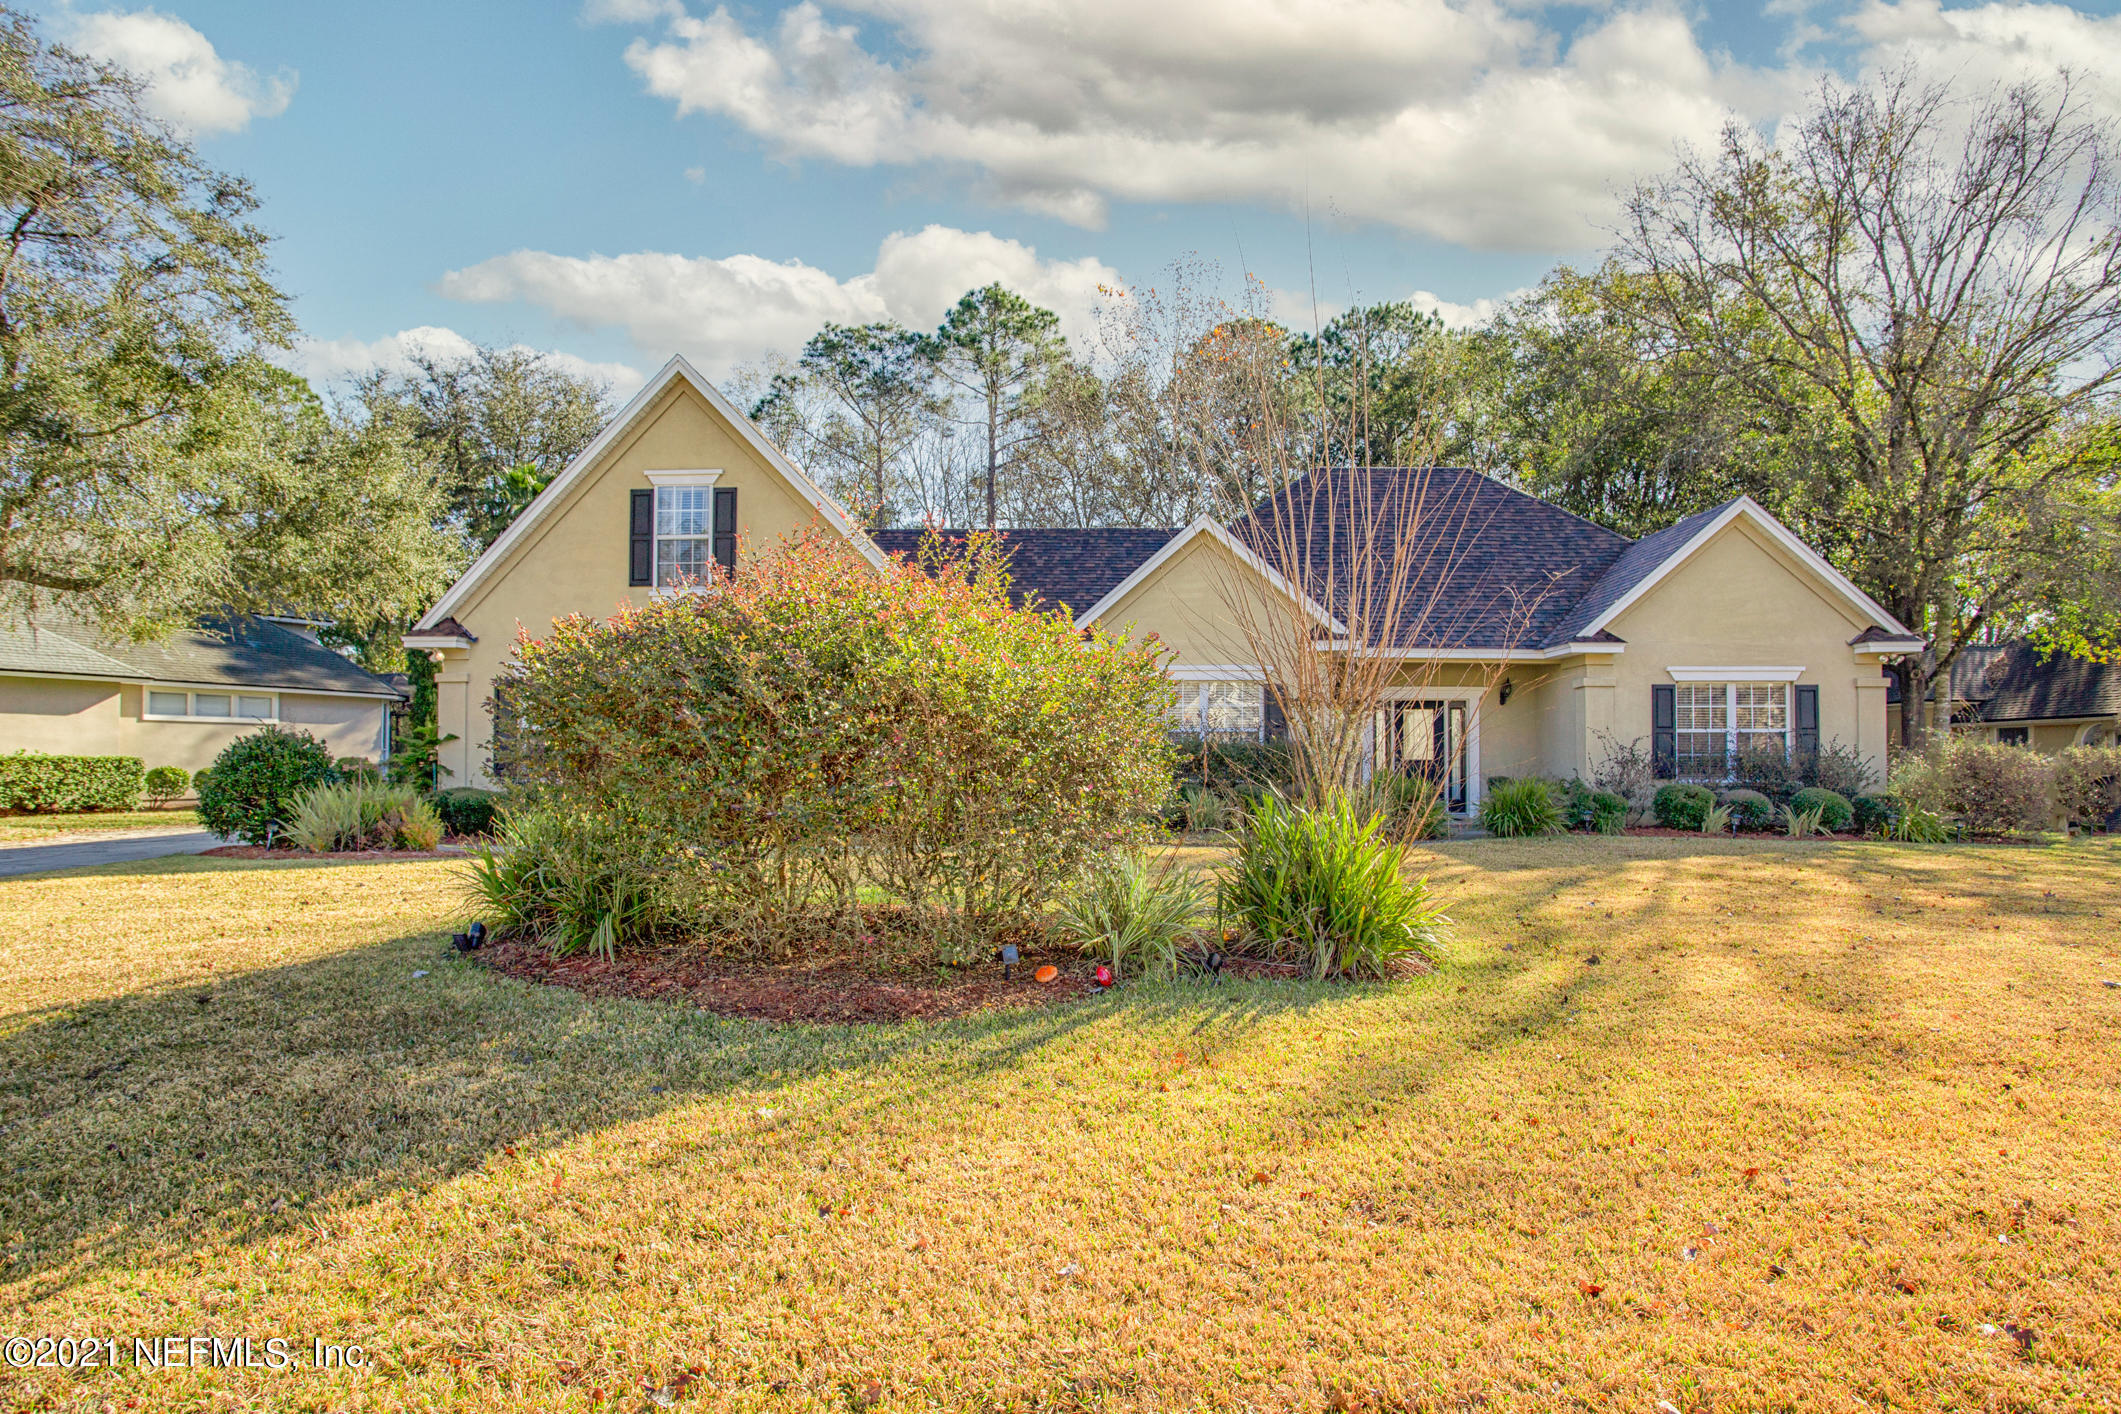 2680 COUNTRY CLUB, ORANGE PARK, FLORIDA 32073, 3 Bedrooms Bedrooms, ,3 BathroomsBathrooms,Residential,For sale,COUNTRY CLUB,1087839